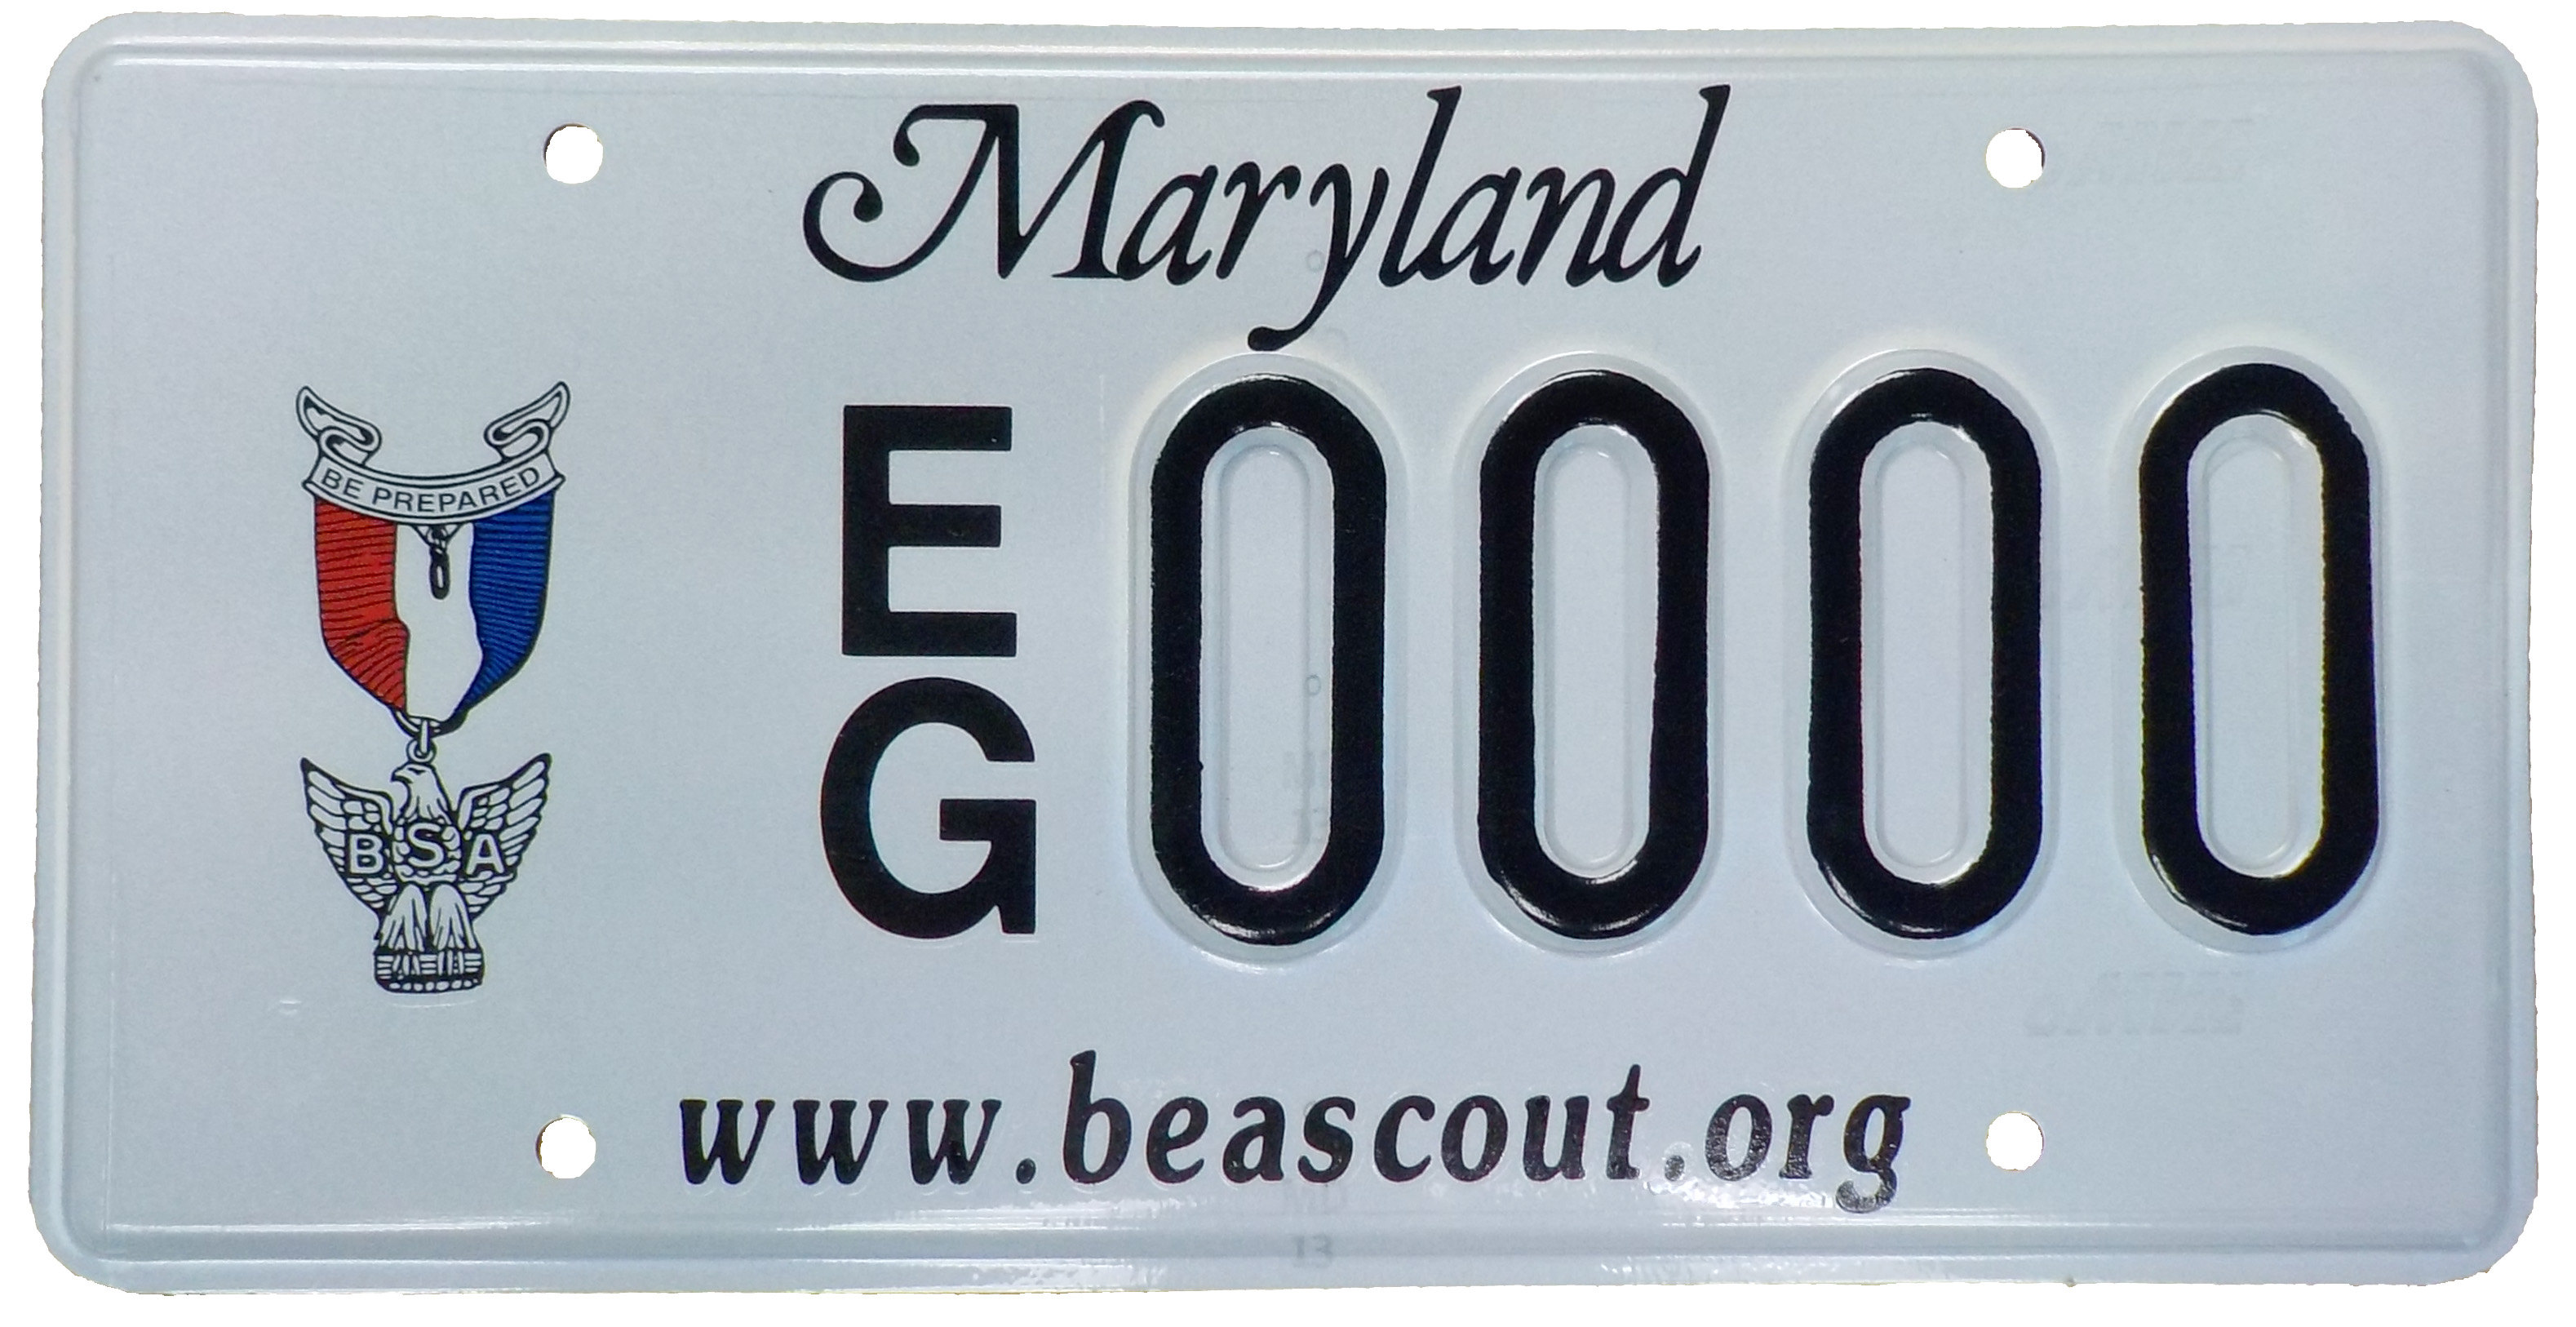 Eagle Scout License Plate/Tag Registration